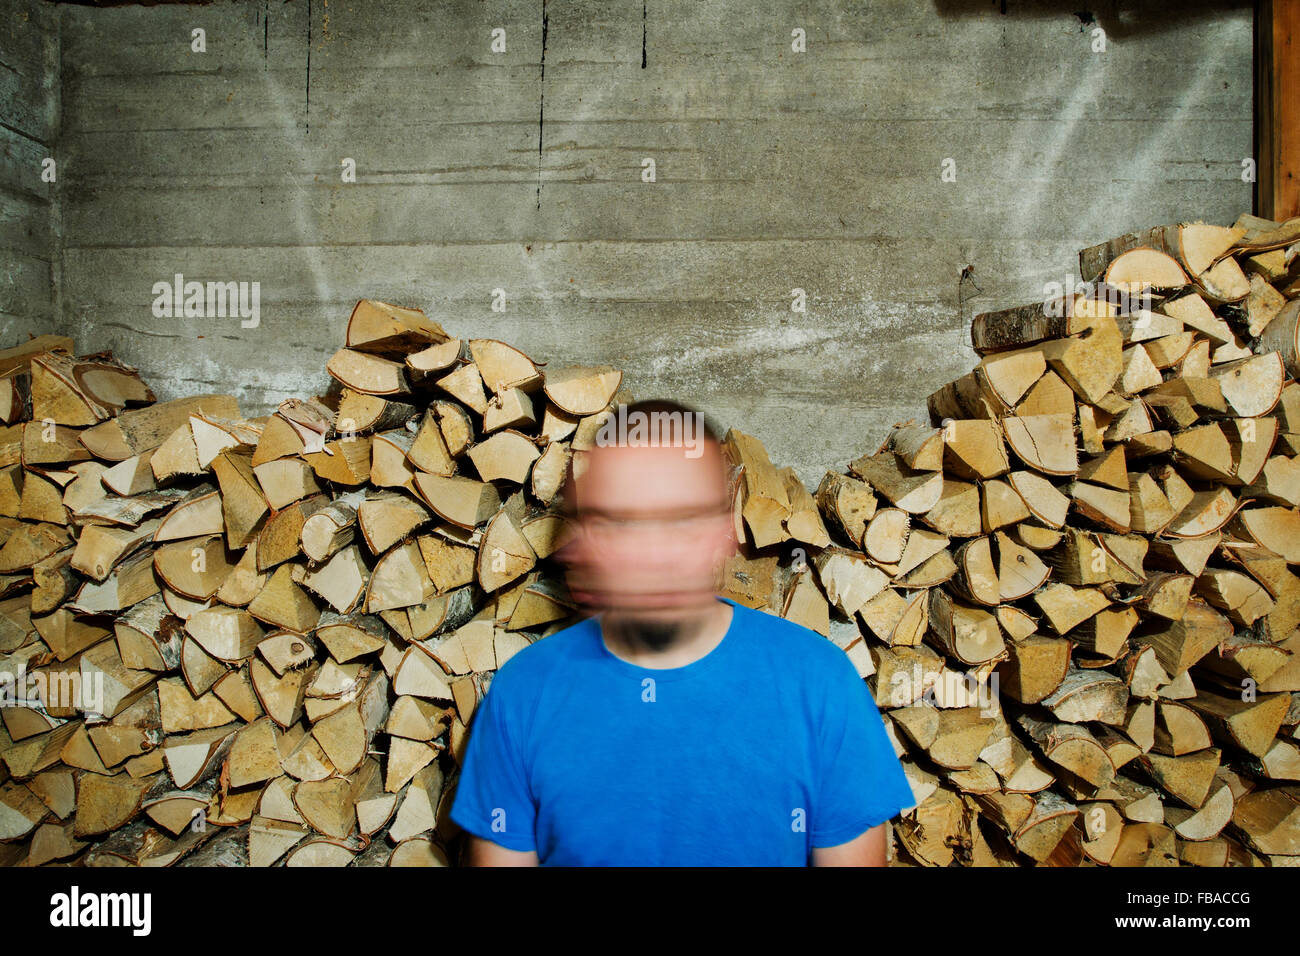 Finland, Heinola, Man with blurred face against pile of wood - Stock Image